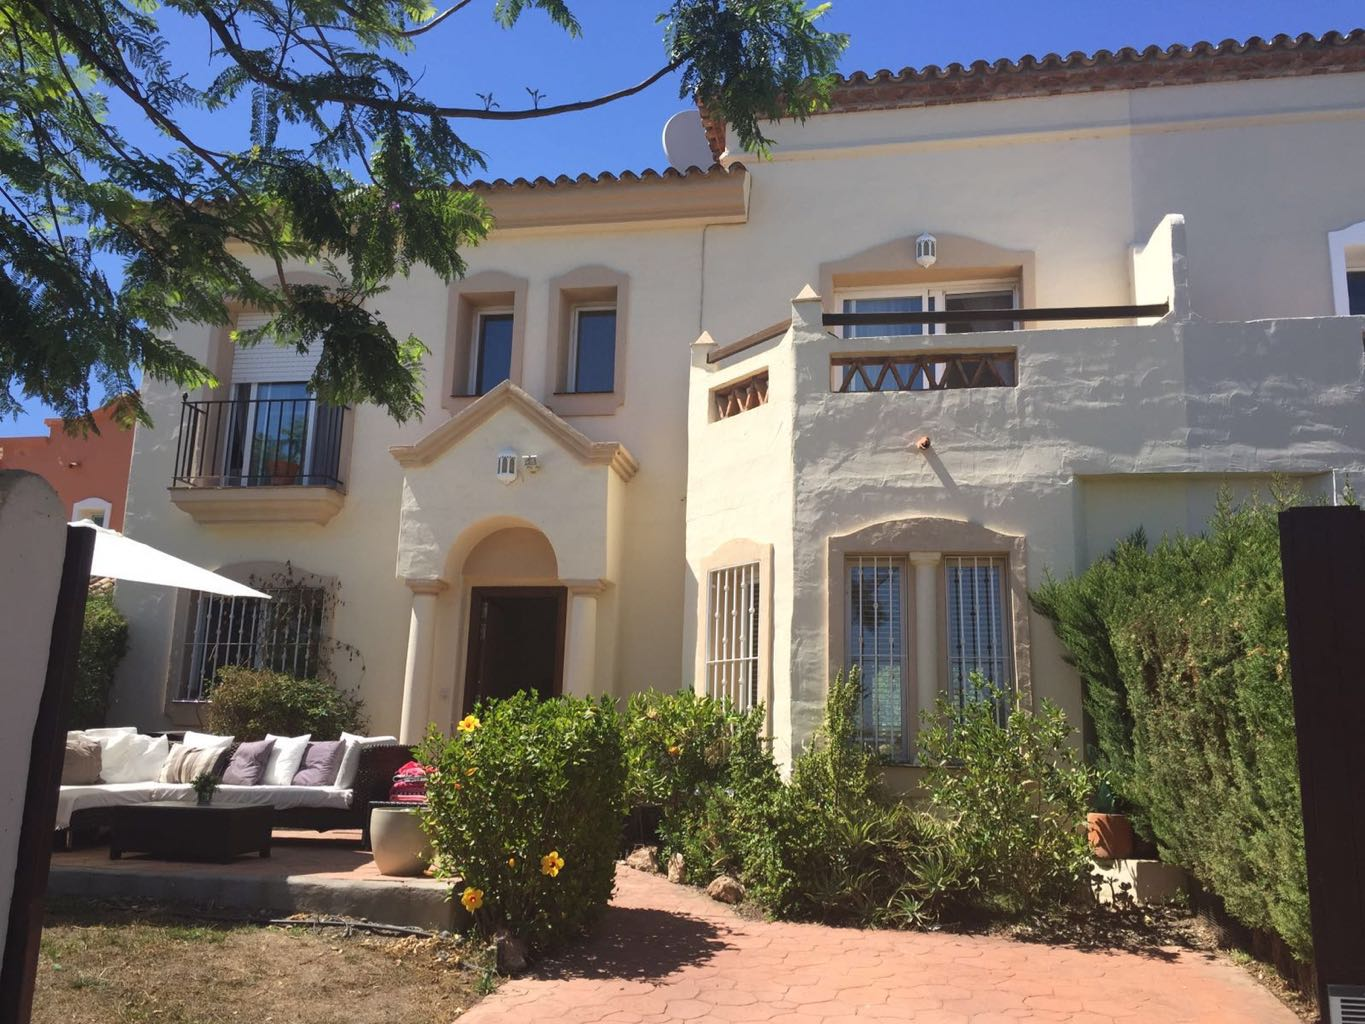 Beautiful townhouse for sale in Cancelada, just off the new Golden Mile